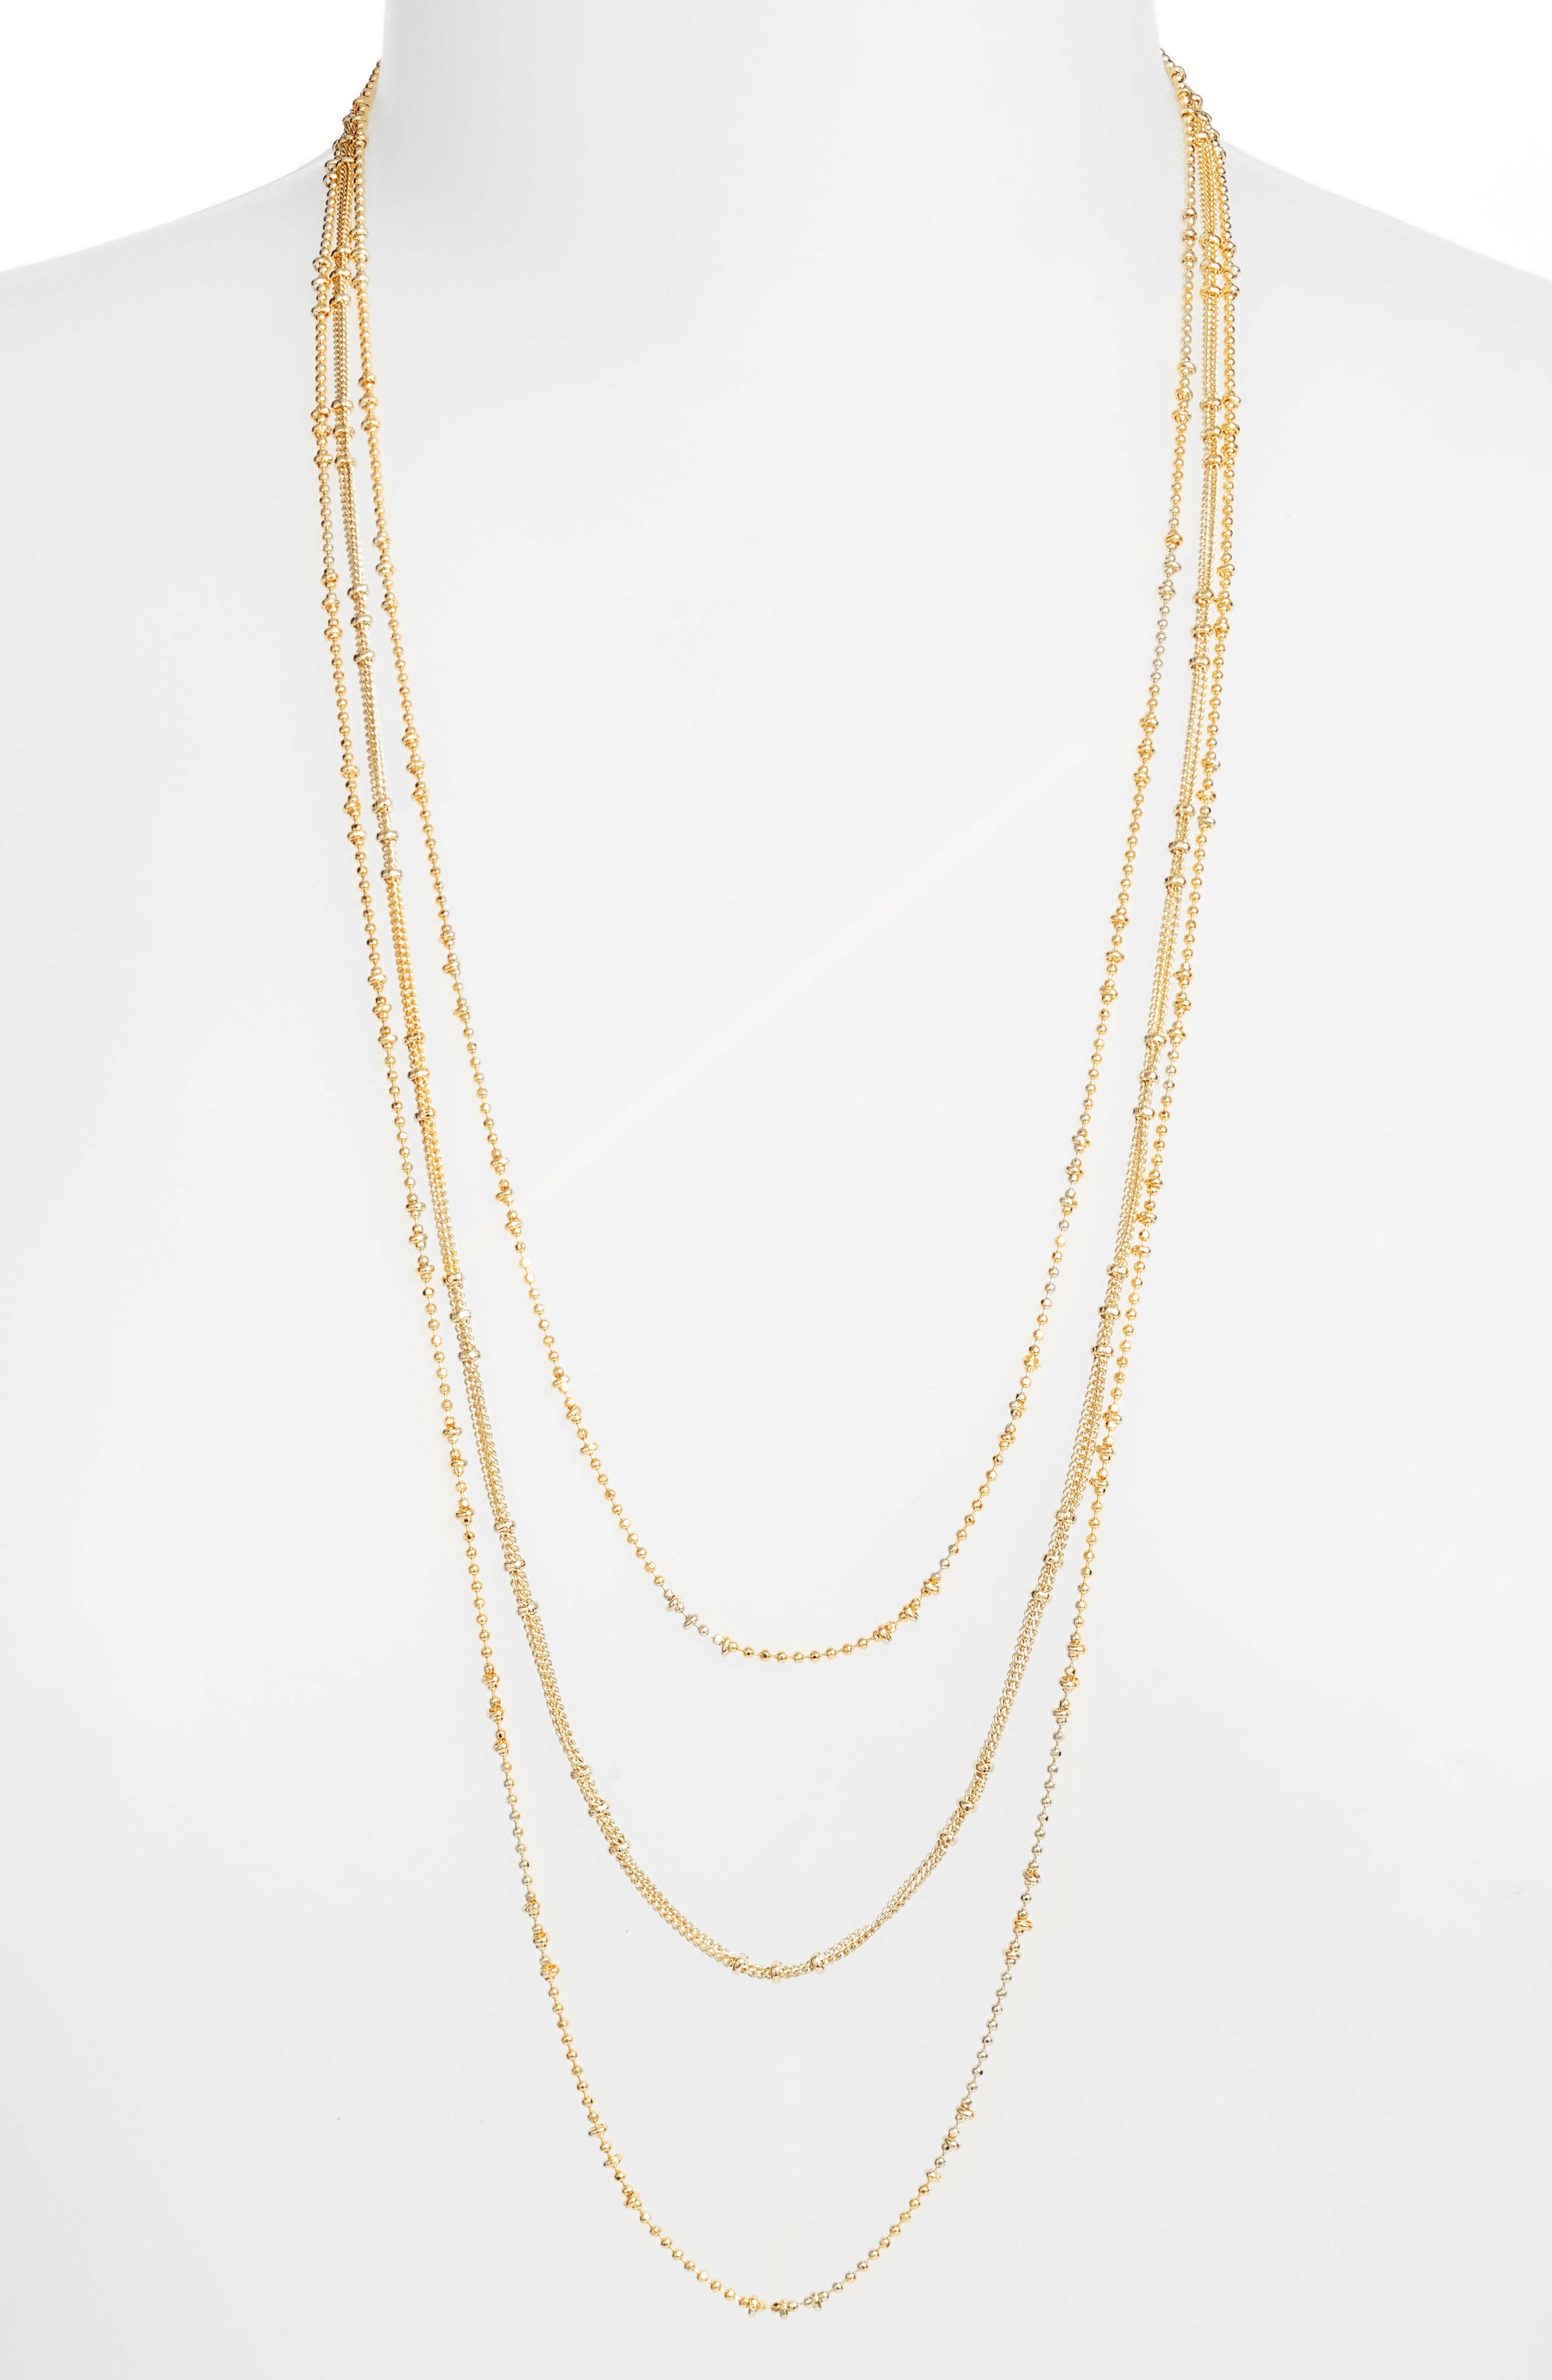 Margo 18K Layered Chain Necklace,                             Main thumbnail 1, color,                             710